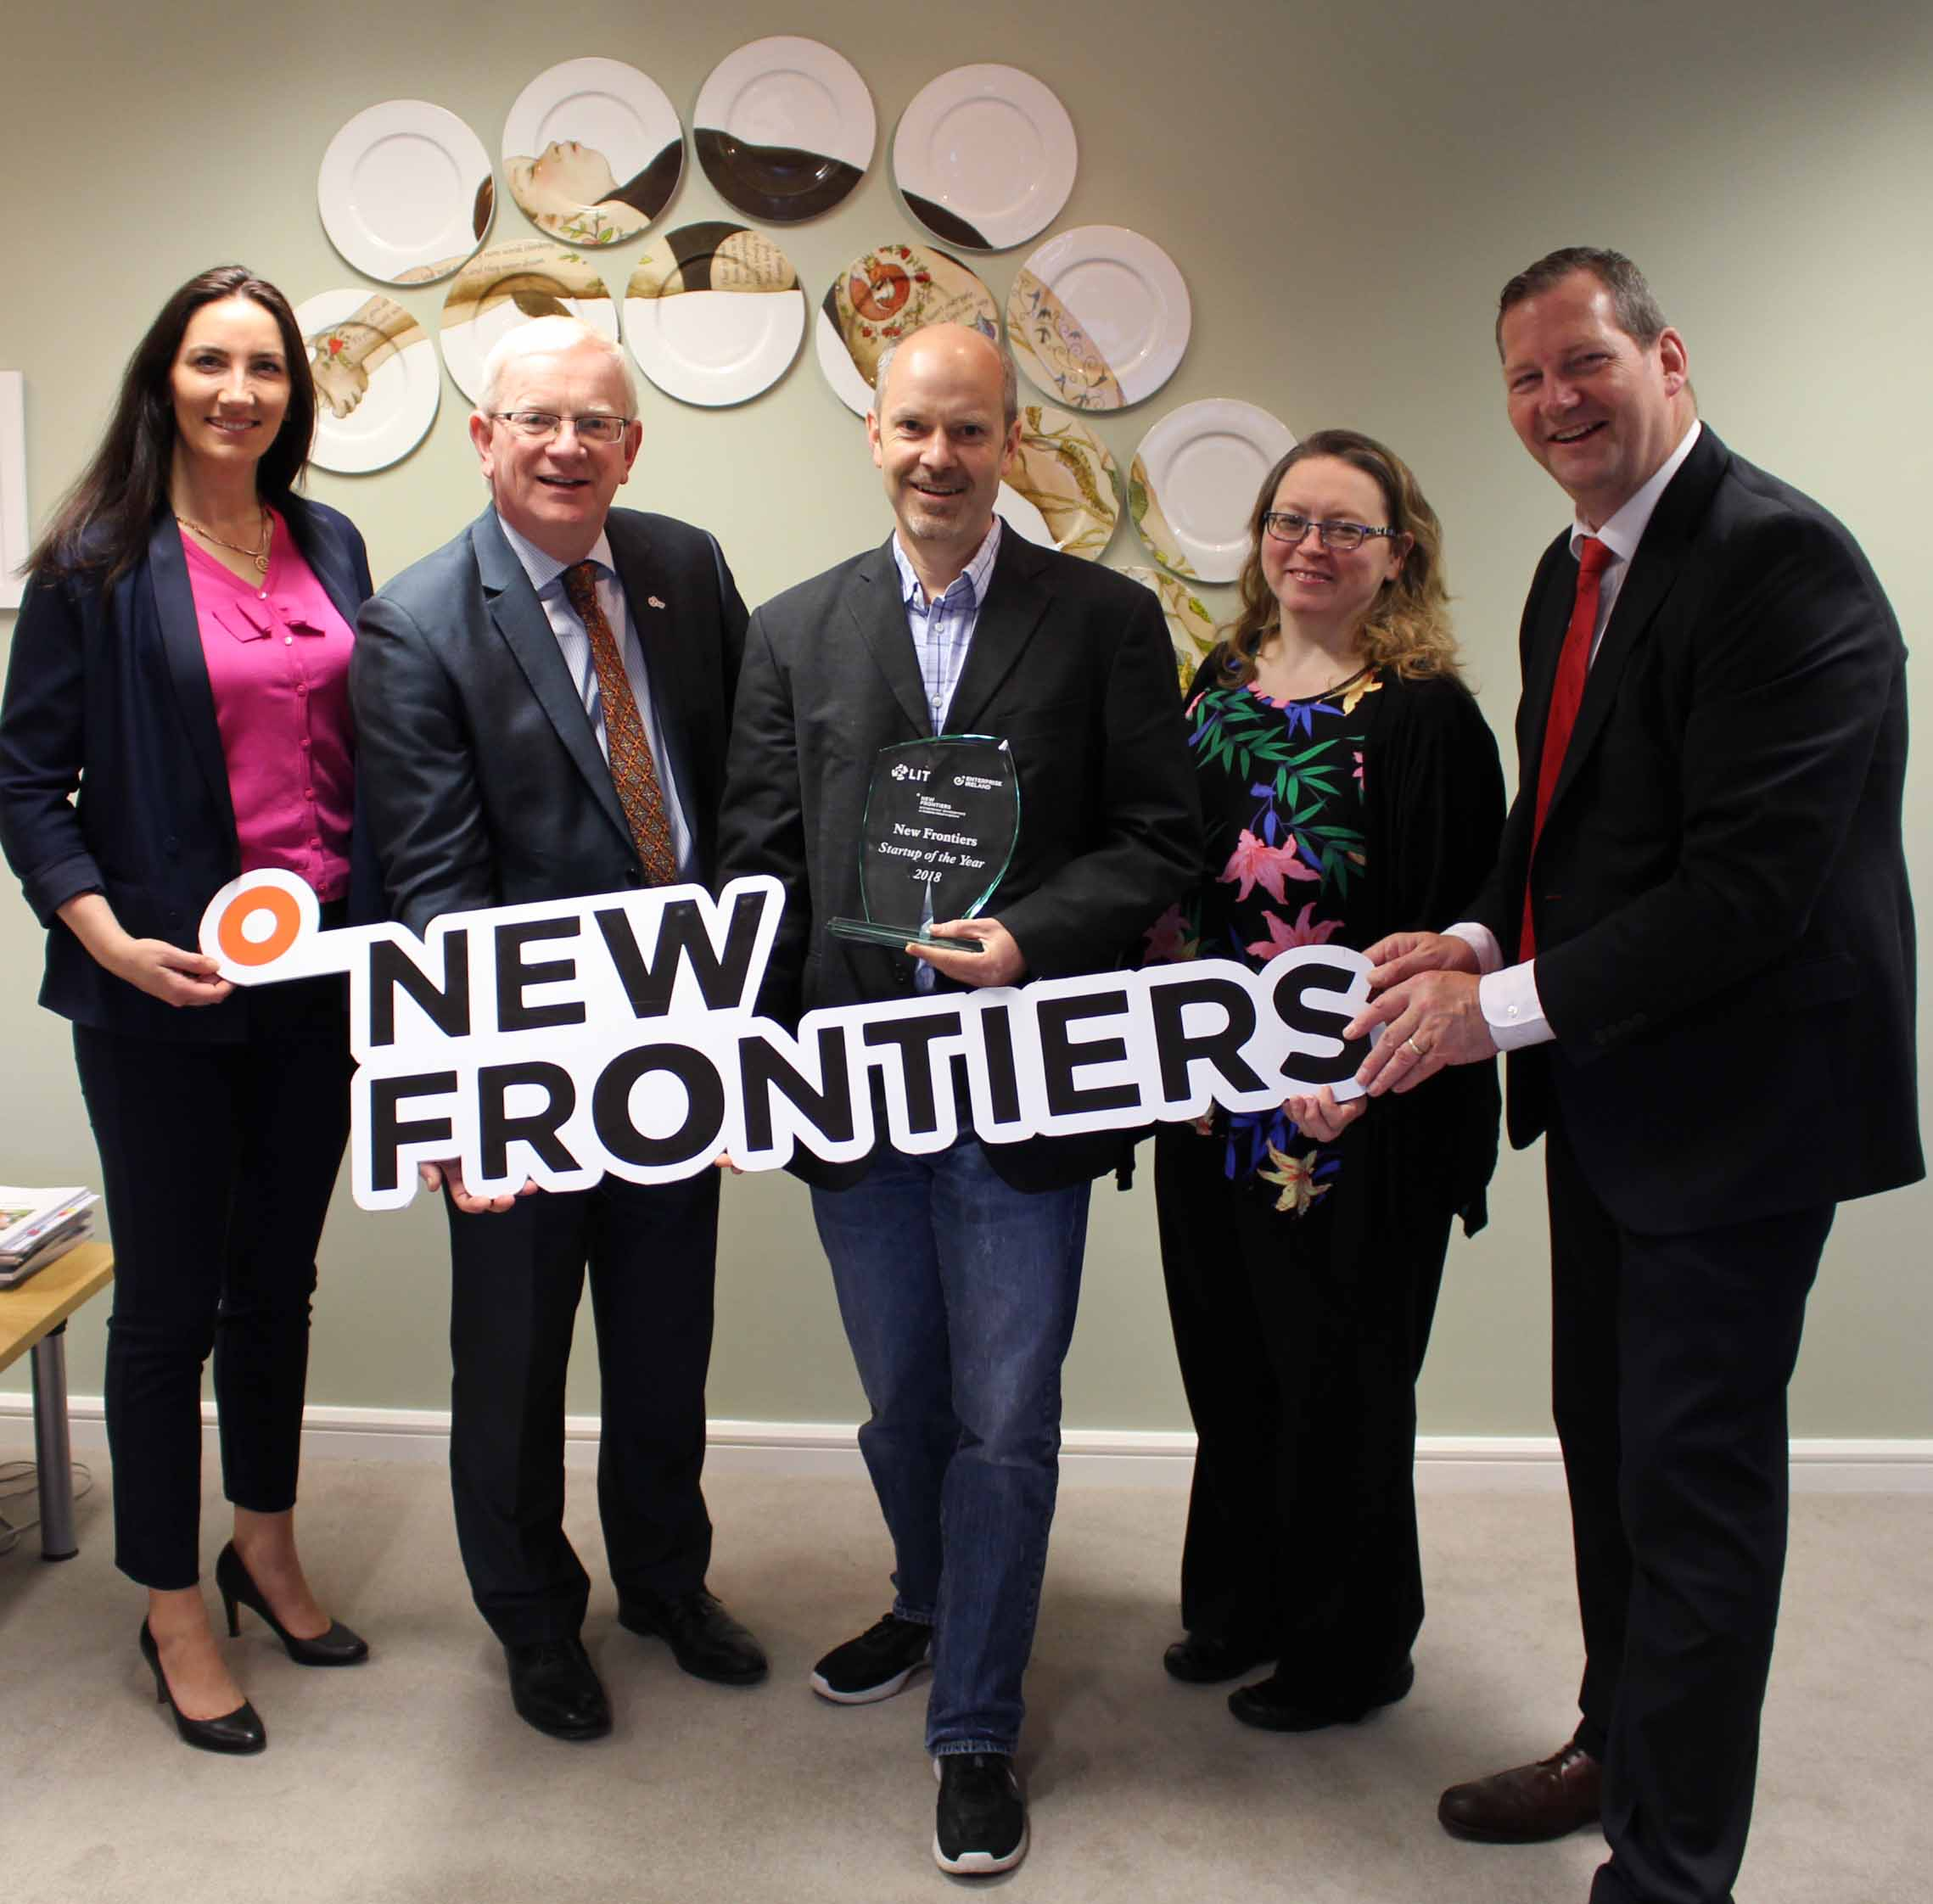 Mid West's Brightest Startups Shine Through at 2018 New Frontiers Awards